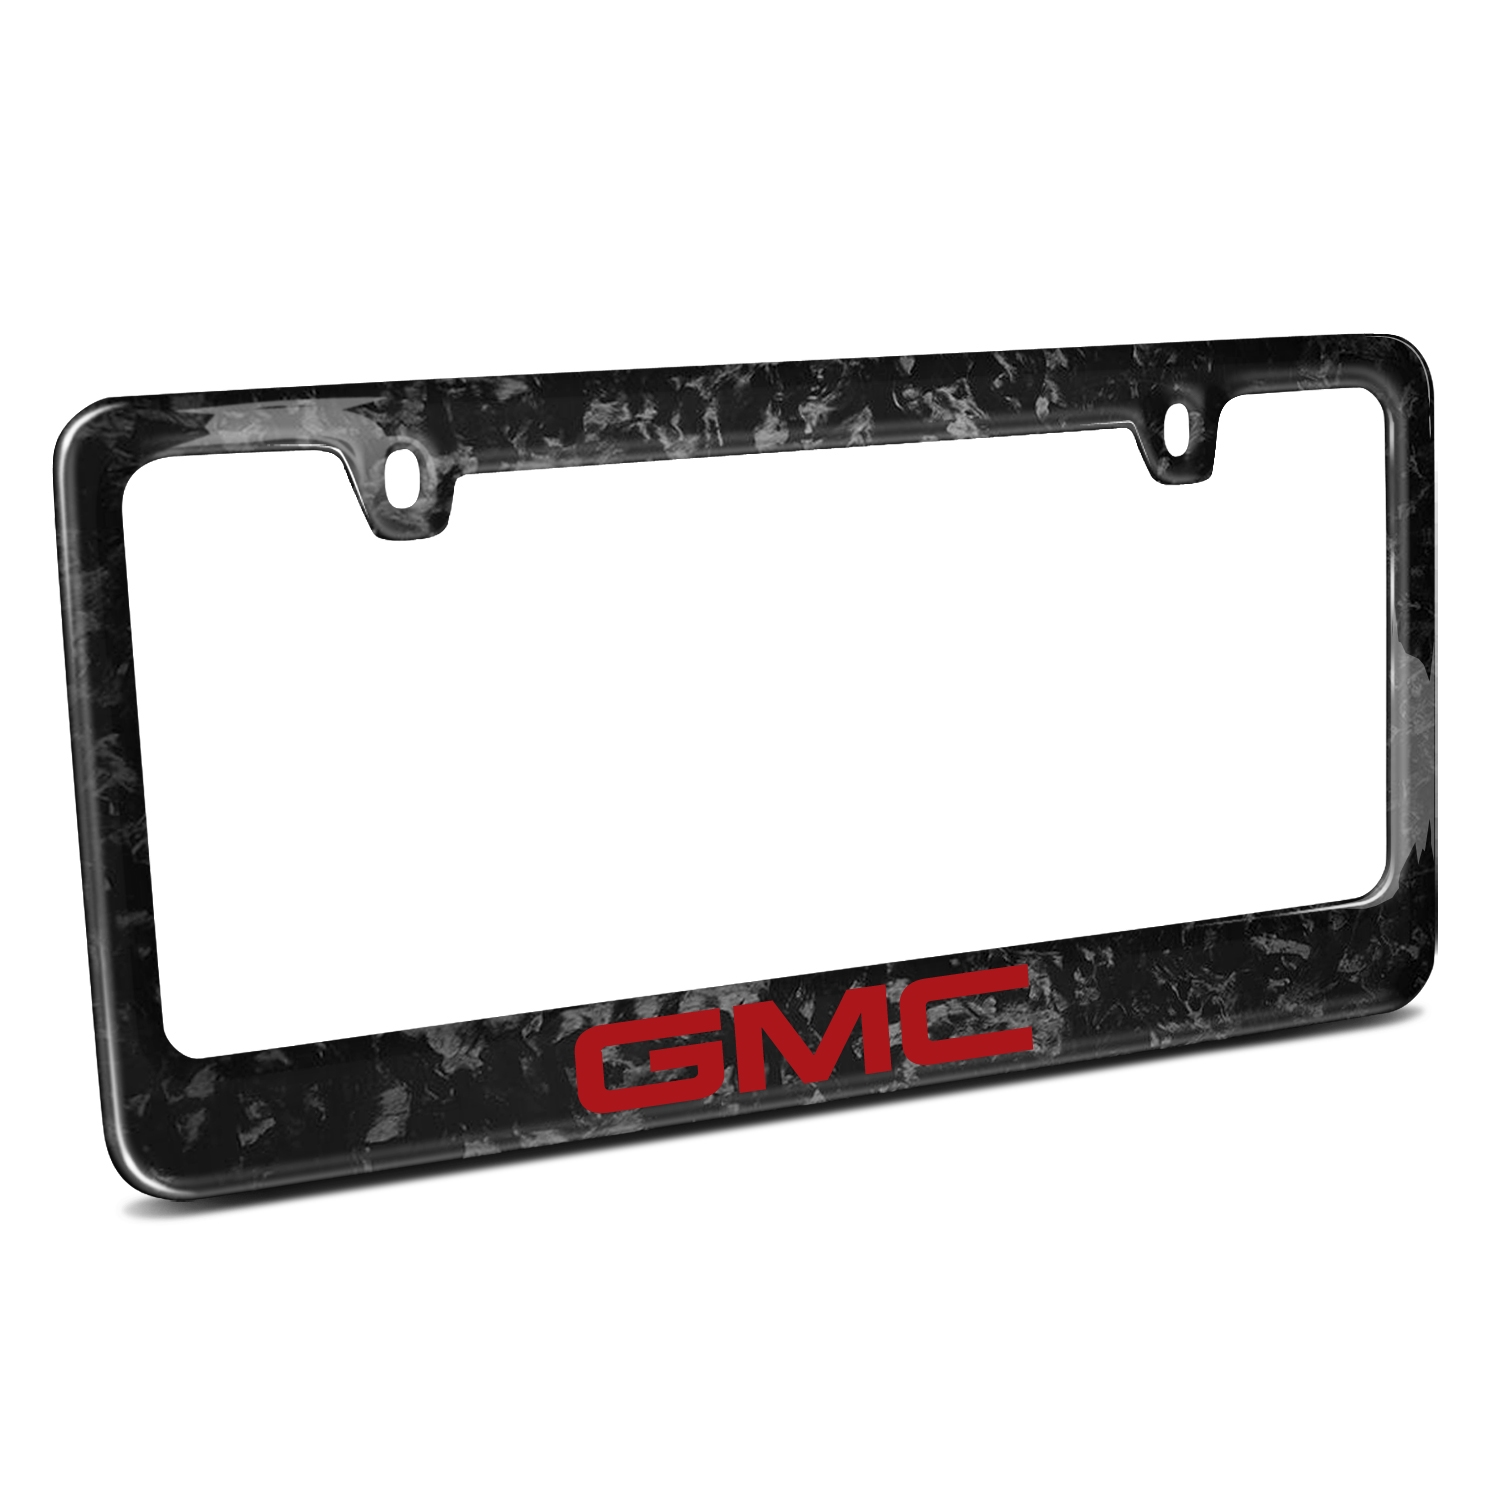 GMC Logo in Red Real Black Forged Carbon Fiber 50 States License Plate Frame